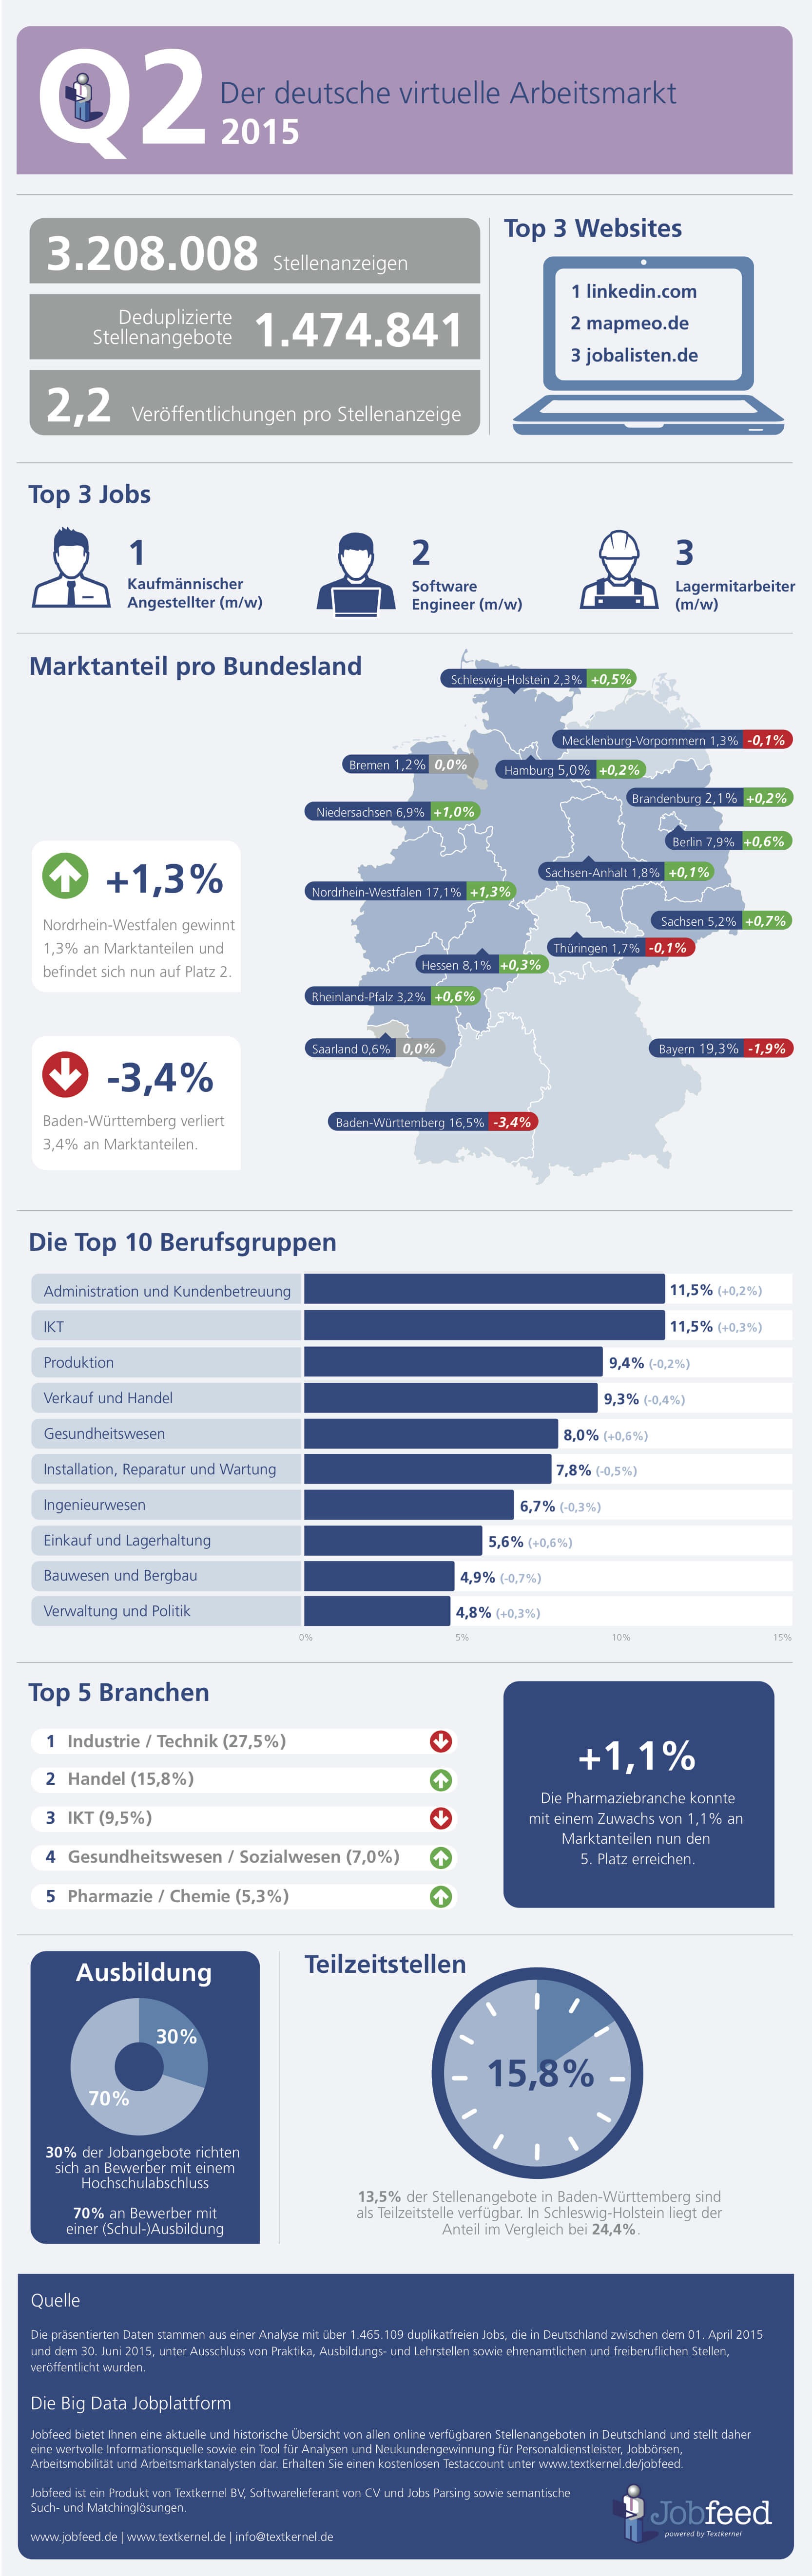 infographic - online jobmarkt in deutschland q2 2015 - small